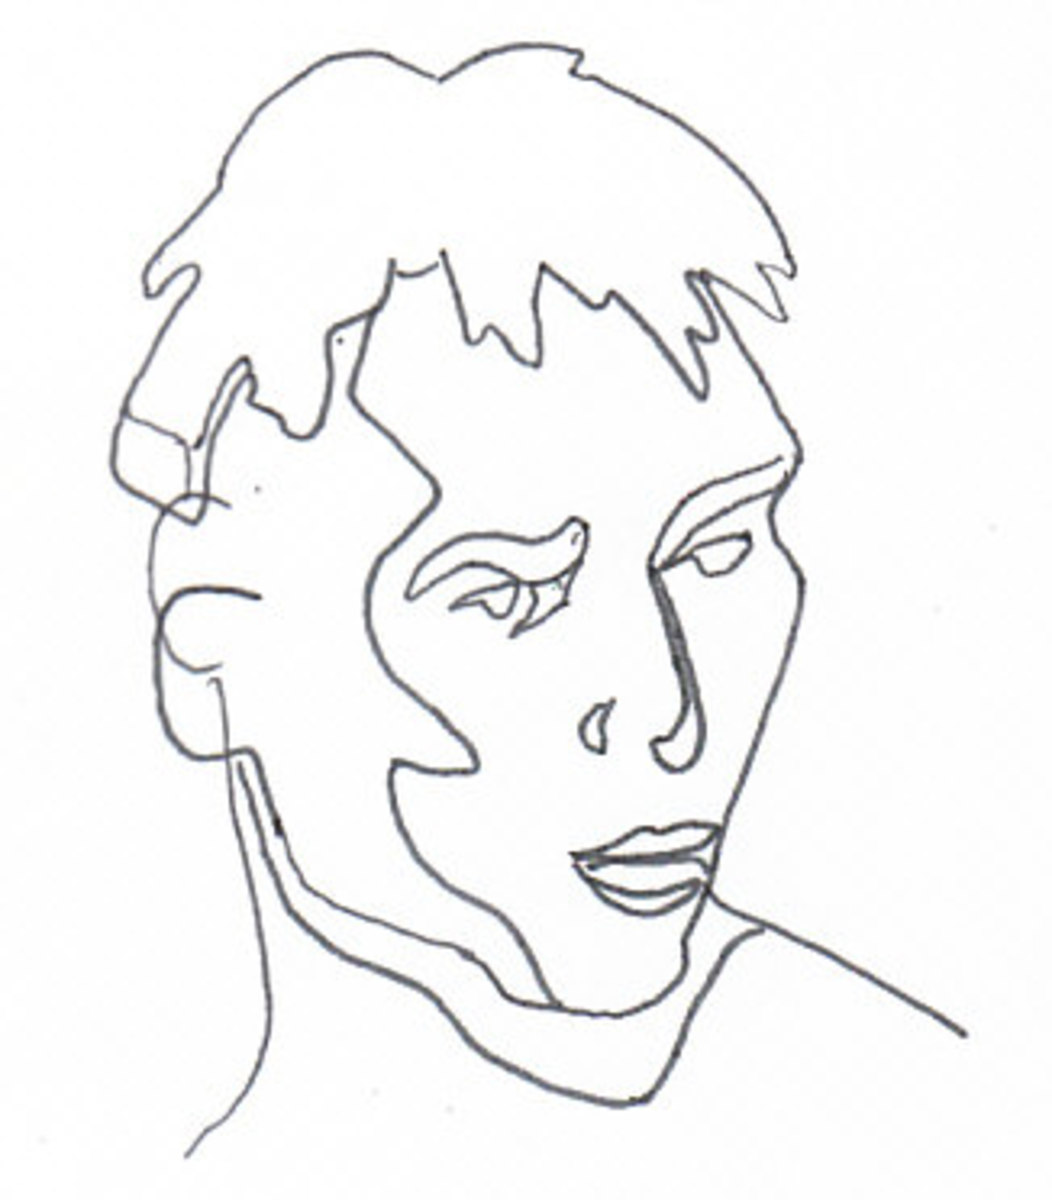 Contour Line Drawing Of A Person : How to paint a gift portrait